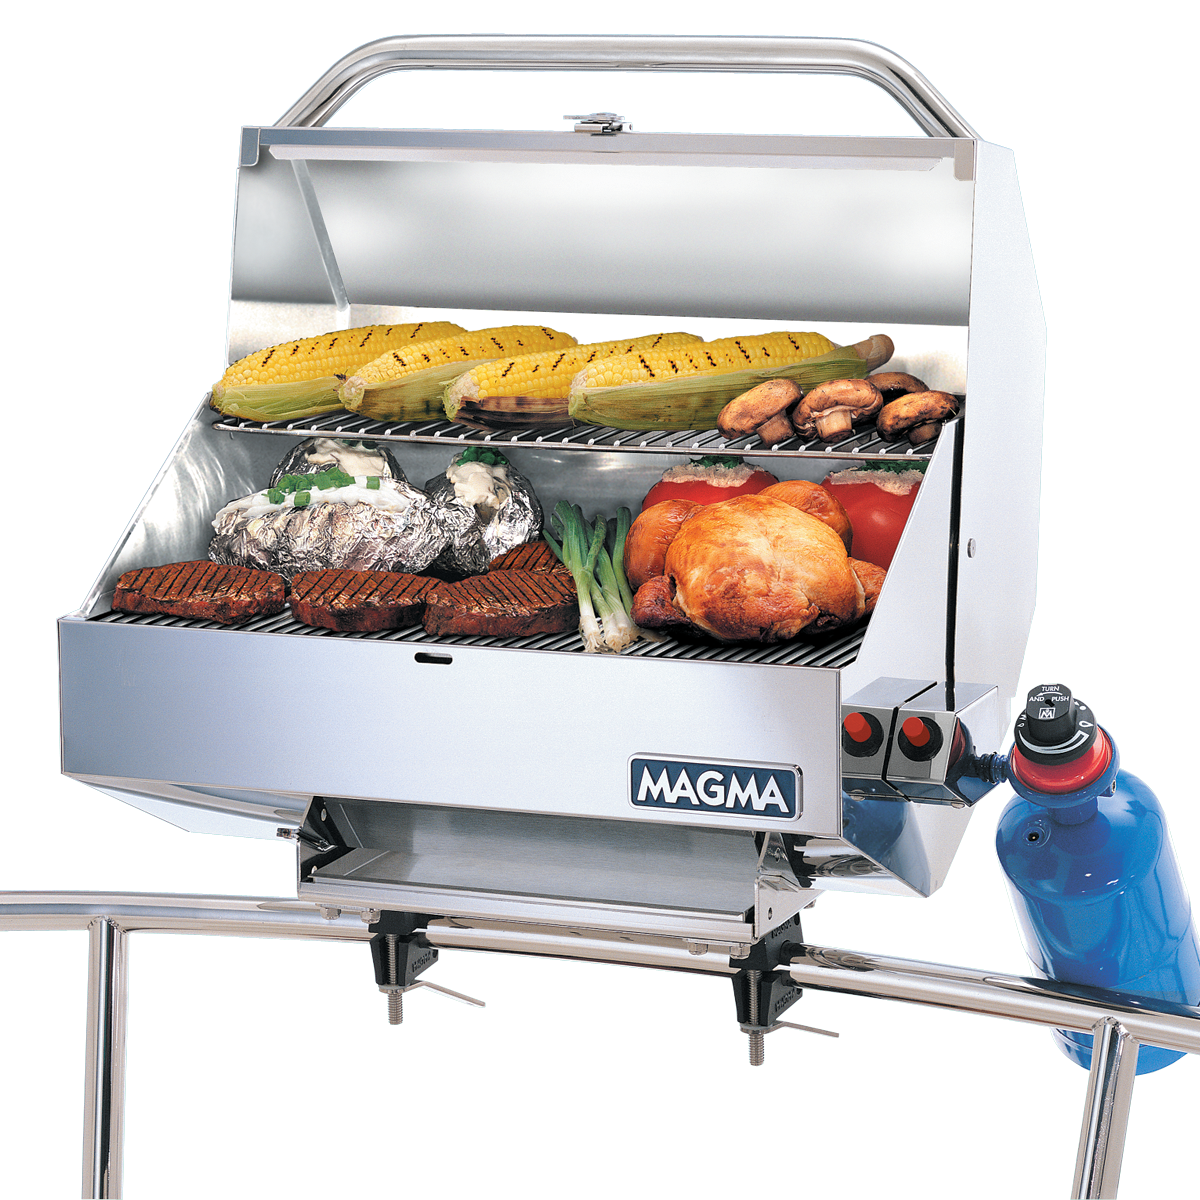 Barbeques -AMPAND- Accessories